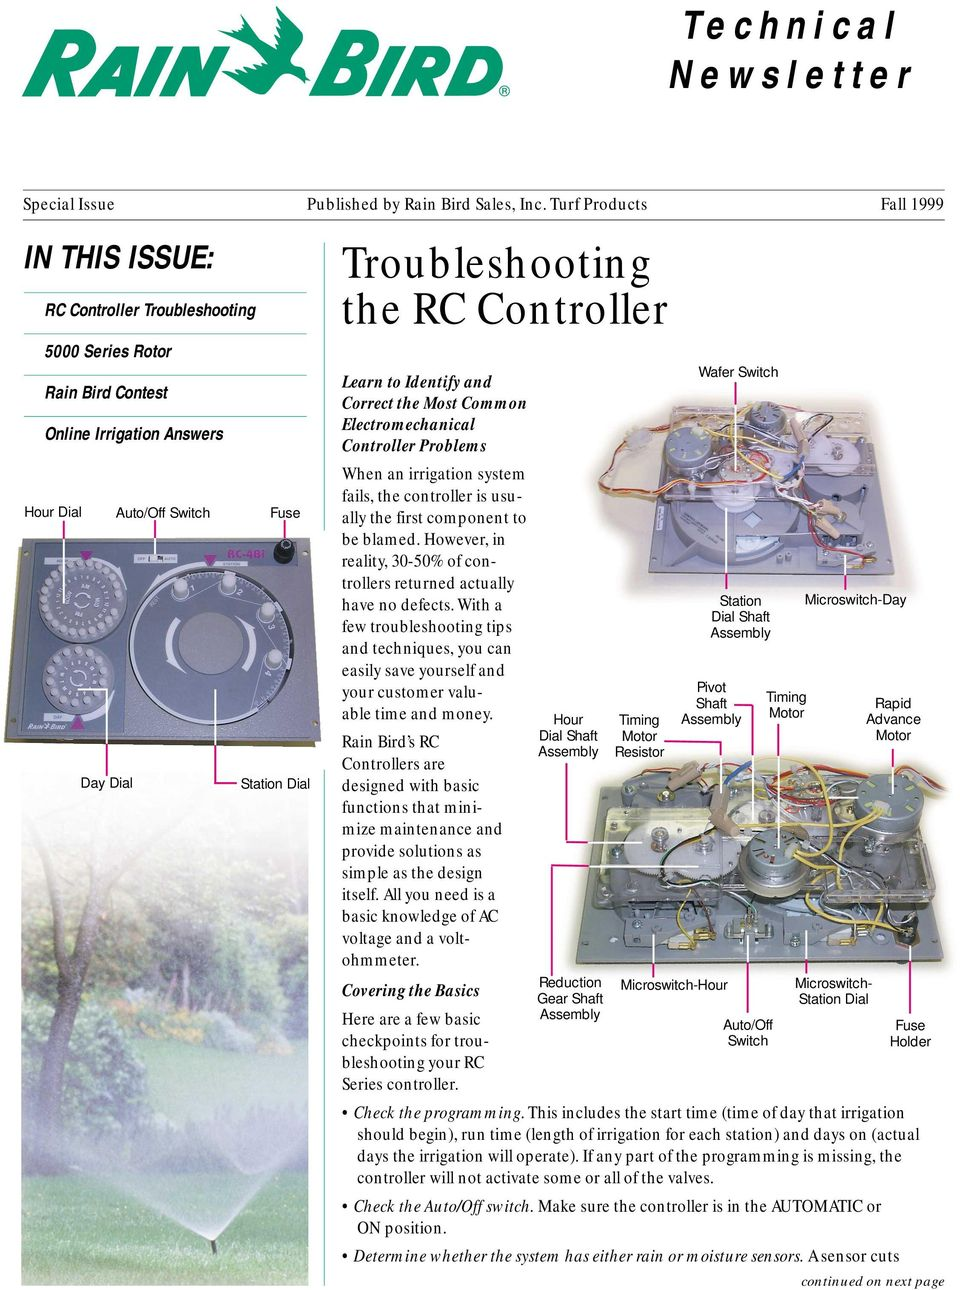 Troubleshooting the RC Controller - PDF on